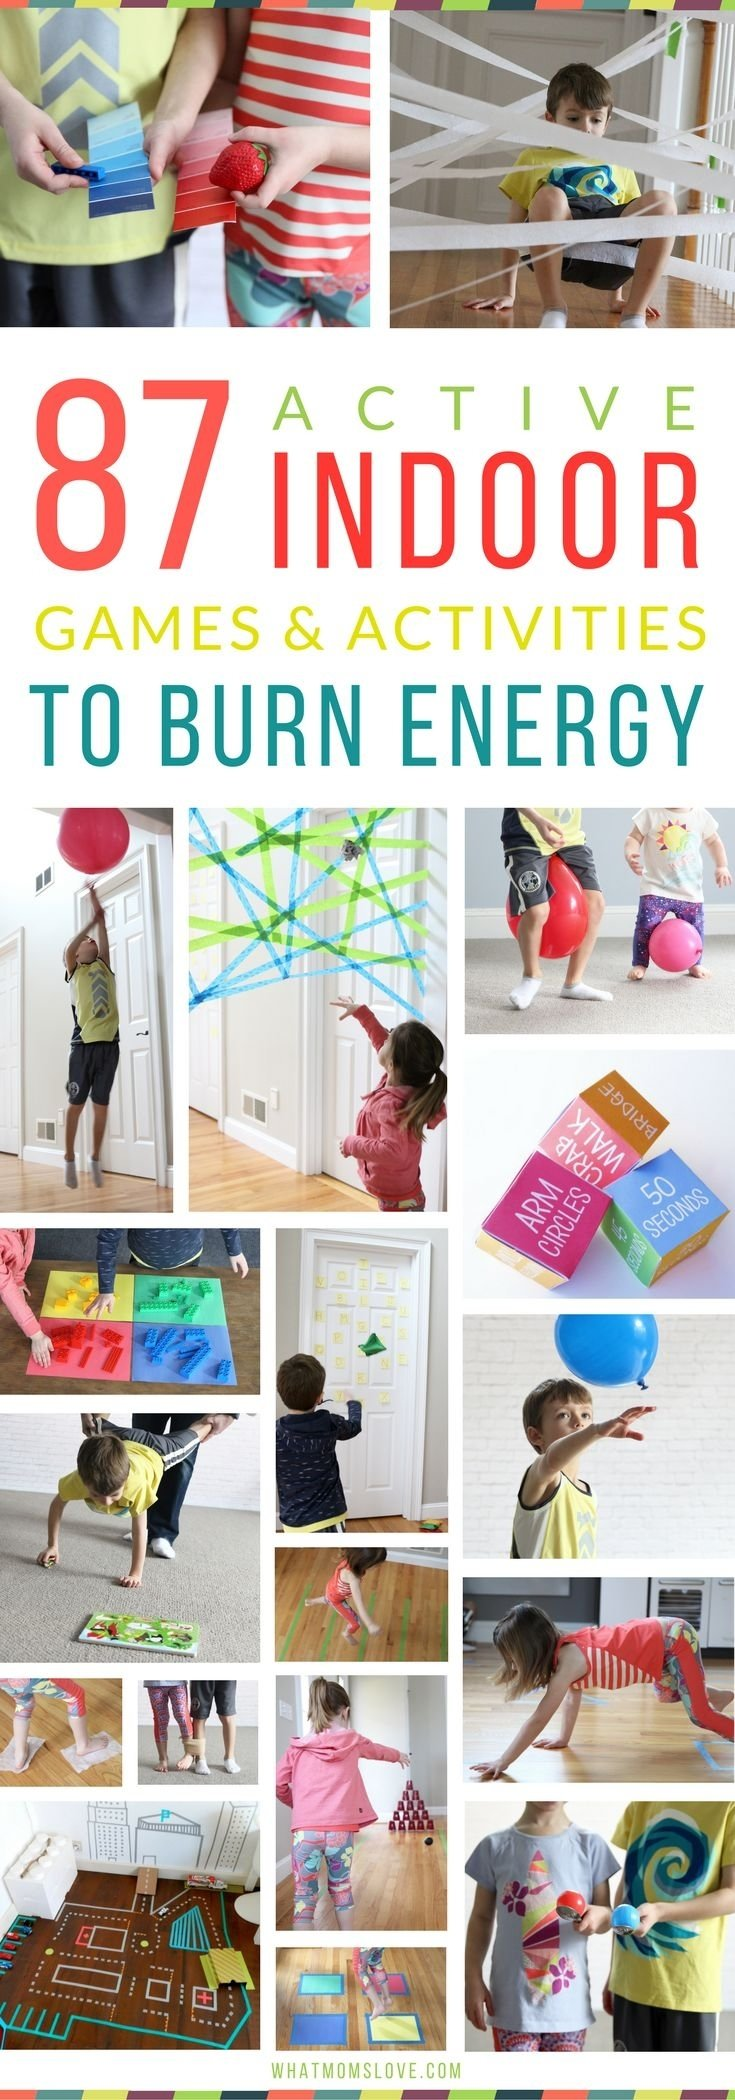 10 Fashionable Fun Game Ideas For Kids 3966 best fun for kids images on pinterest crafts for kids 2020